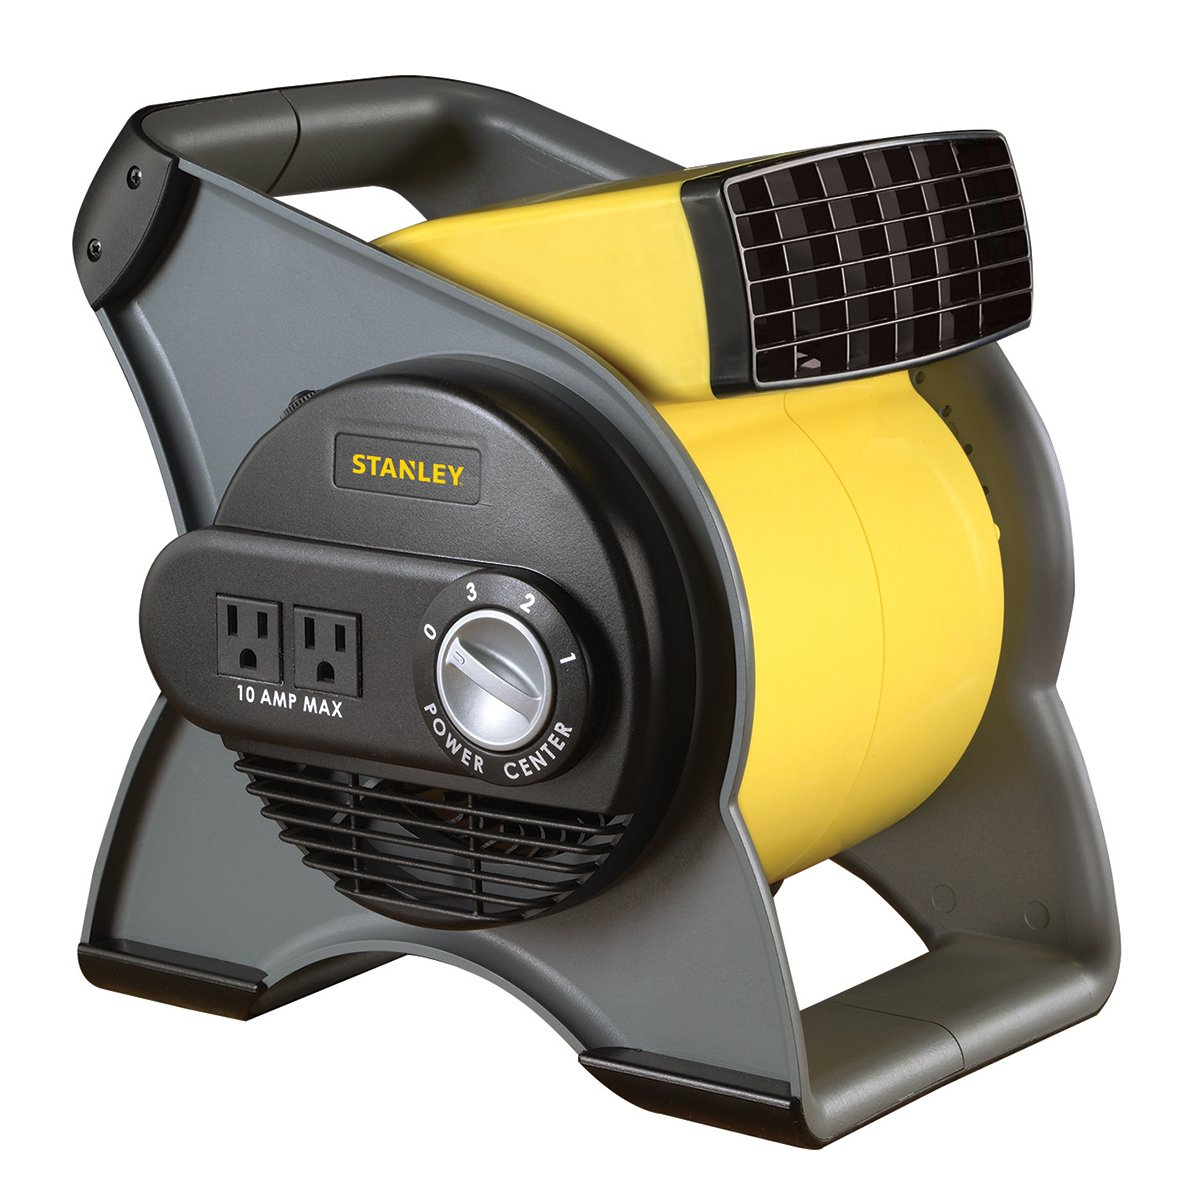 STANLEY 655704 High Velocity Blower Fan - Features Pivoting Blower and Built-in Outlets by Lasko